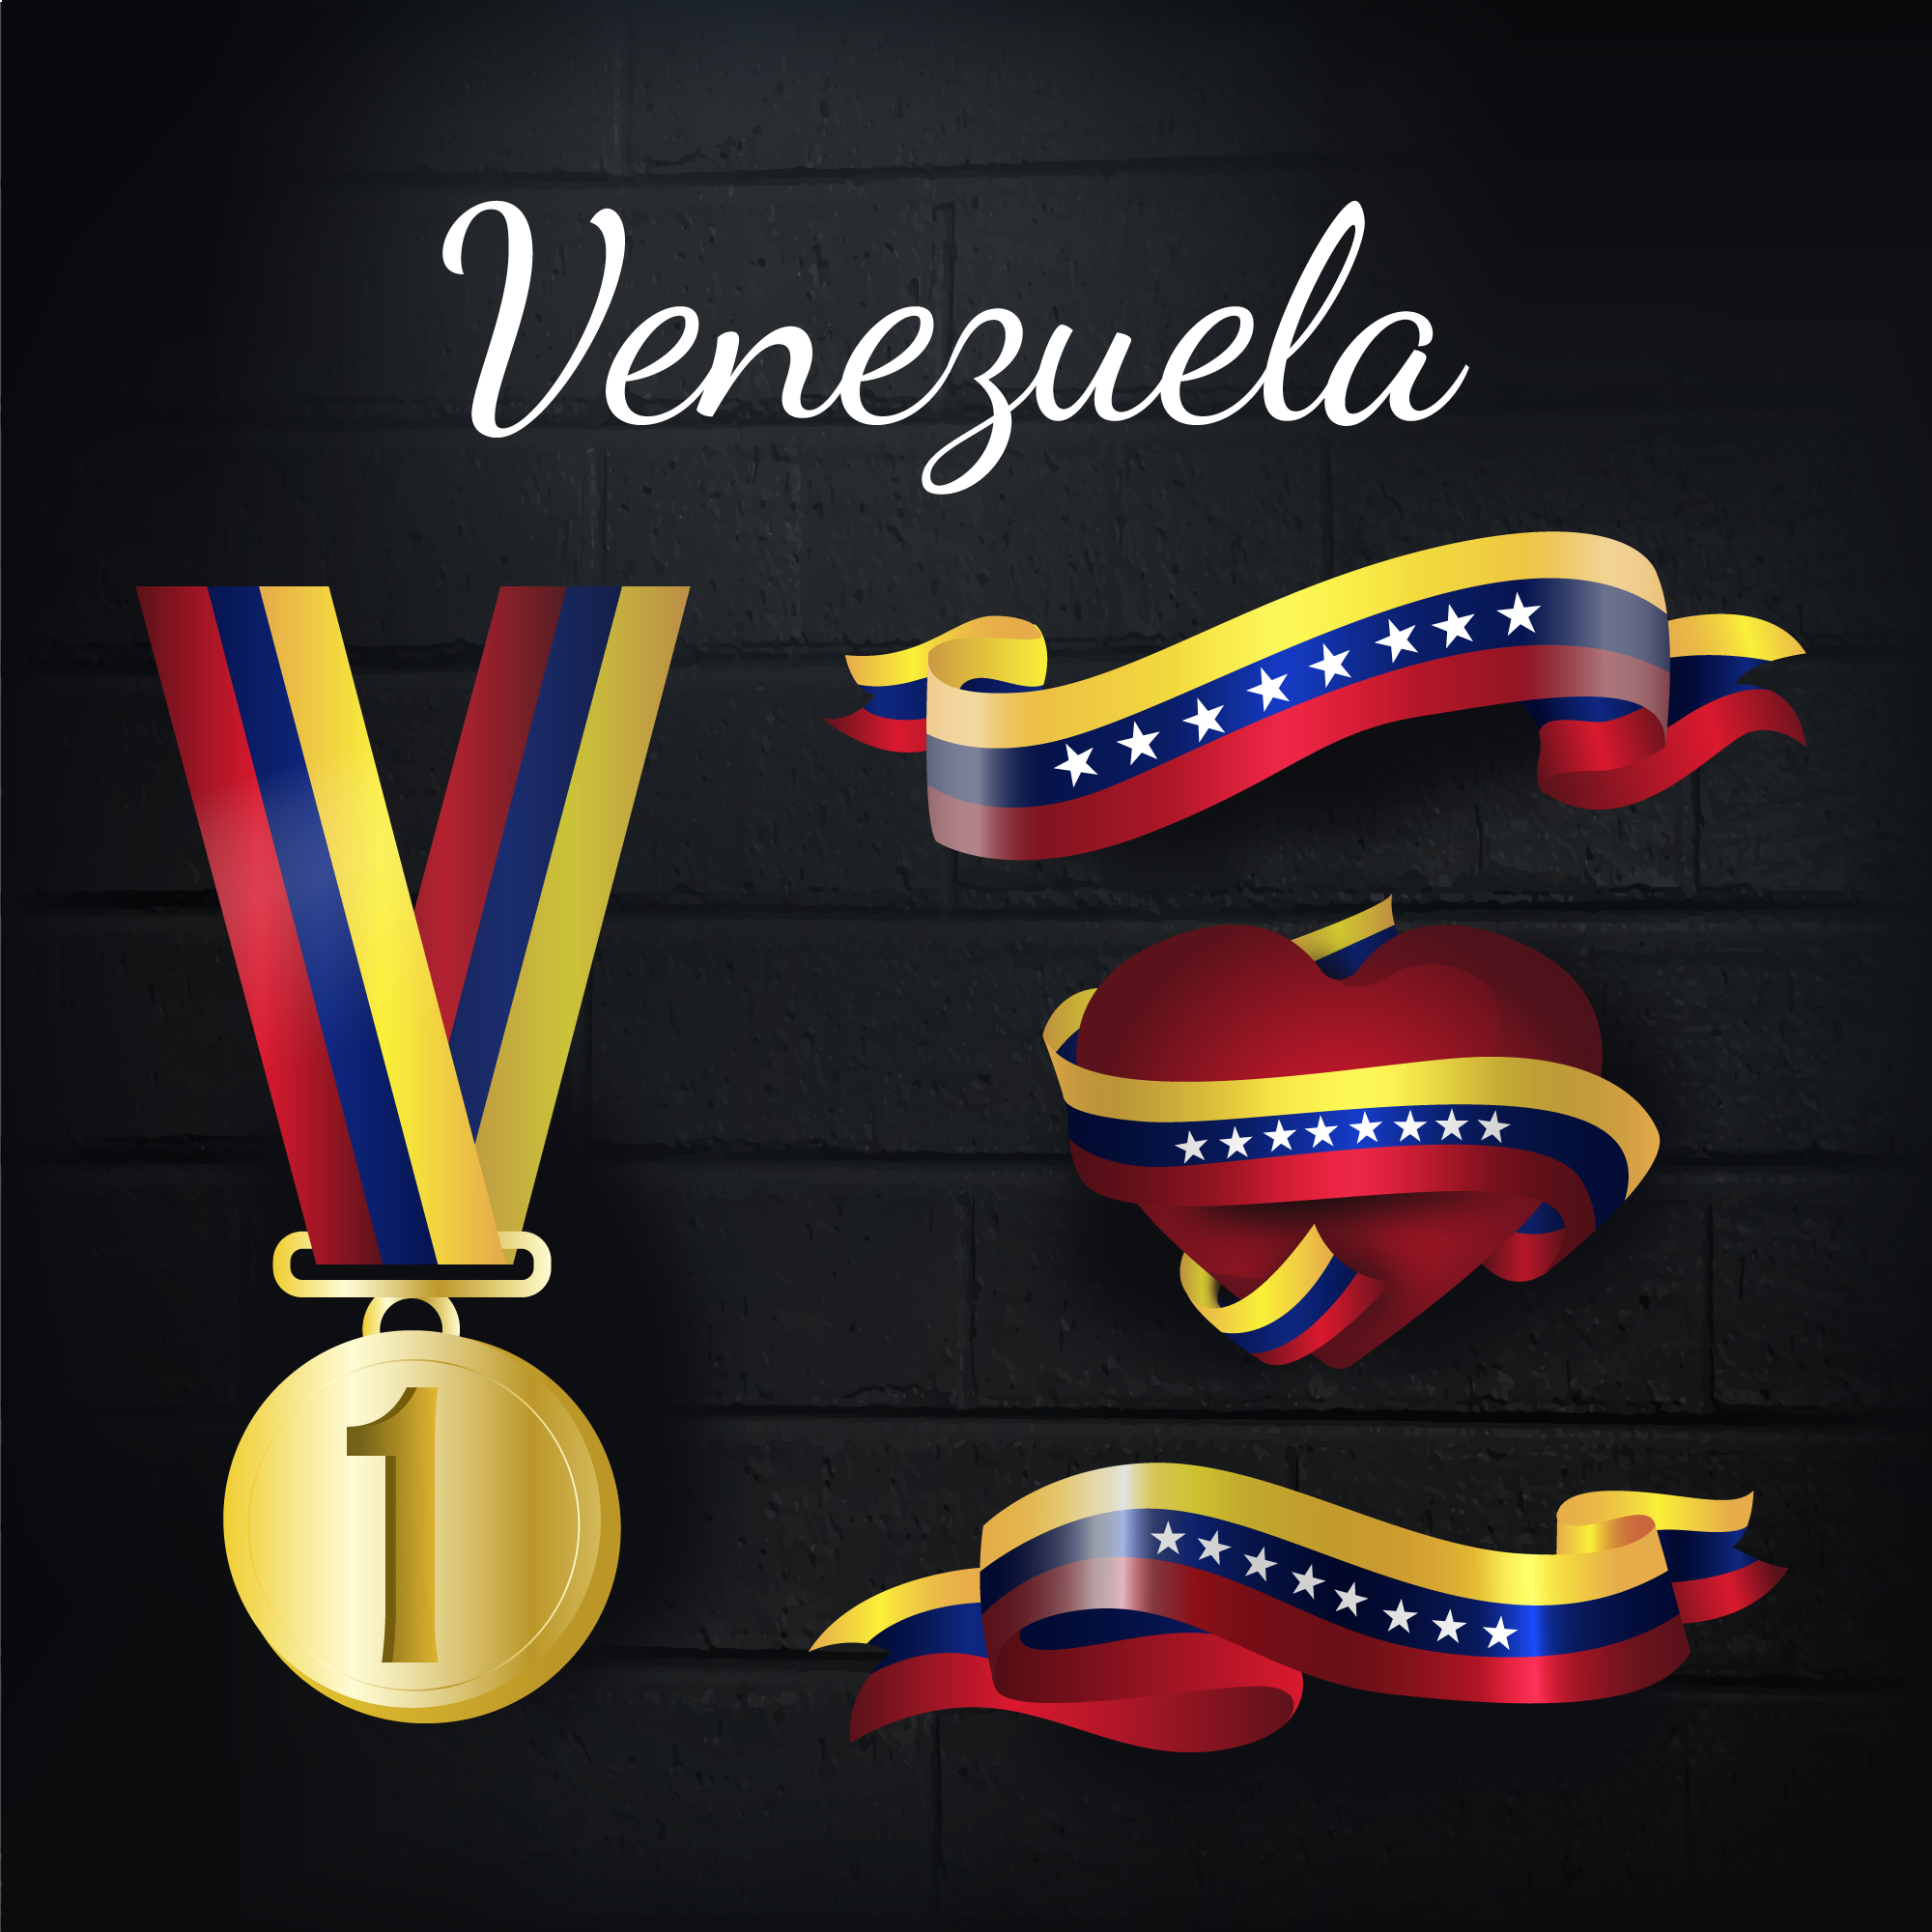 Venezuela gold medal and ribbons collection